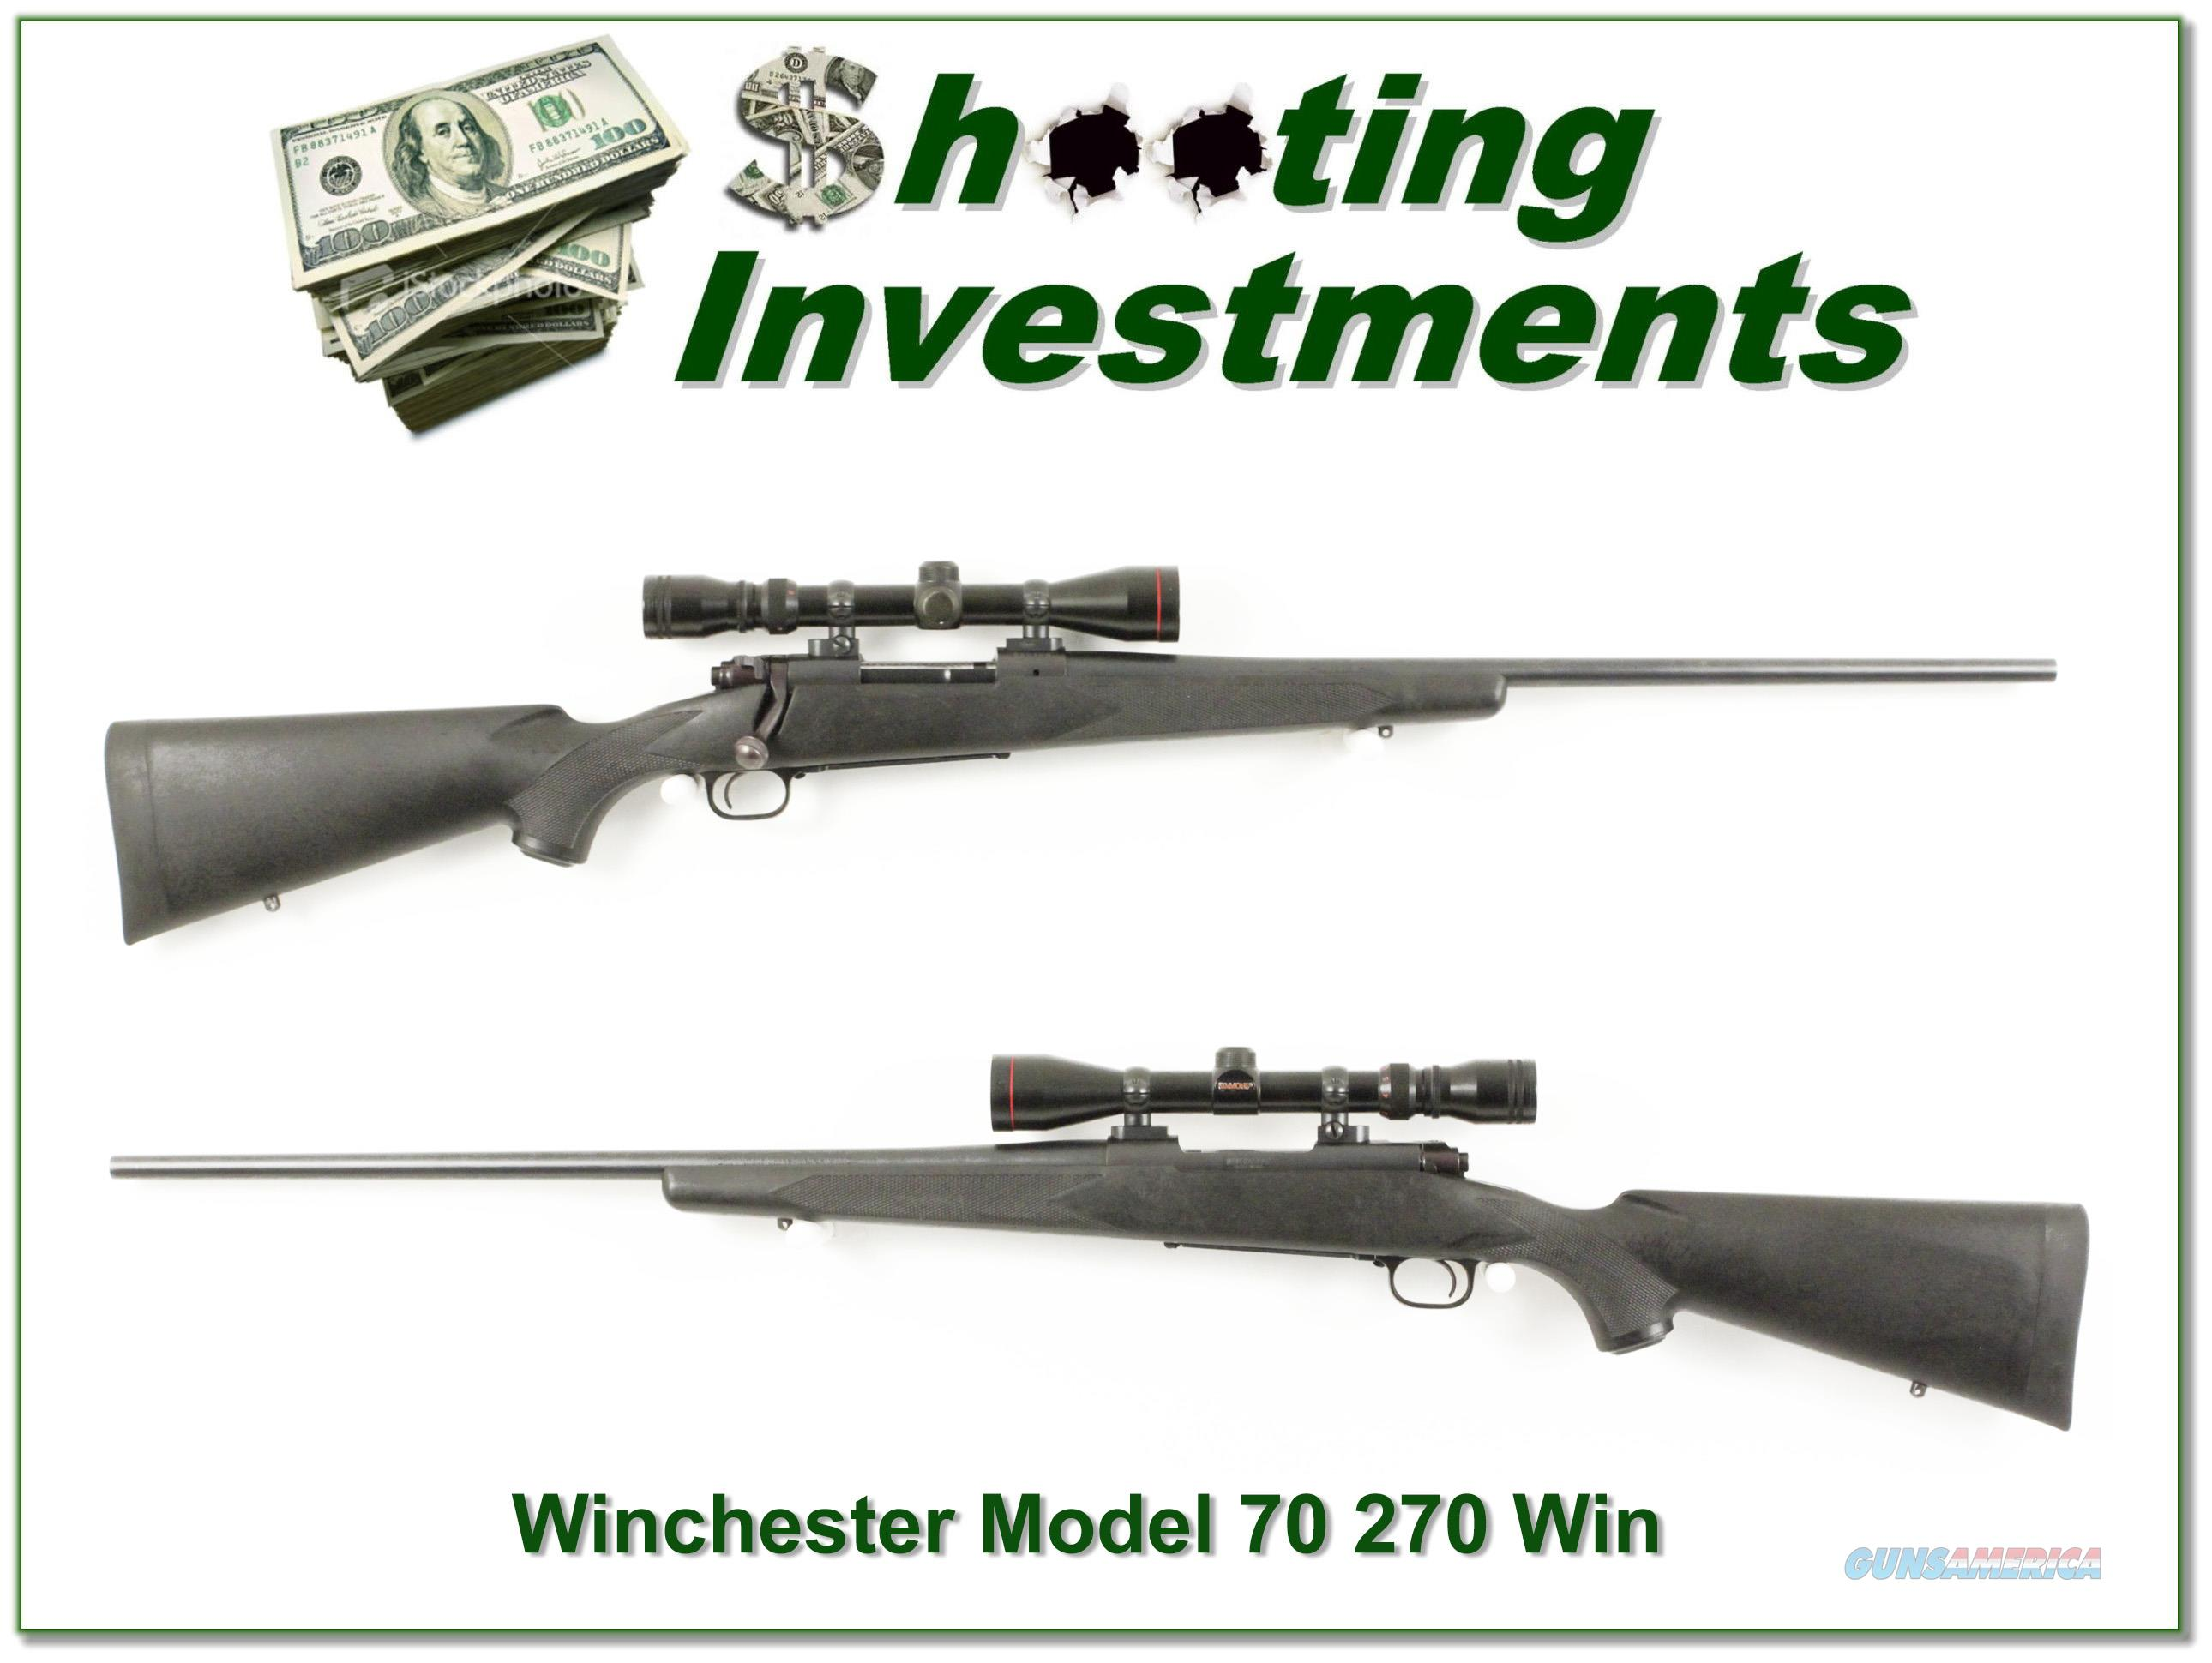 Winchester 70 Classic SM 270 Exc Cond Scope!  Guns > Rifles > Winchester Rifles - Modern Bolt/Auto/Single > Model 70 > Post-64